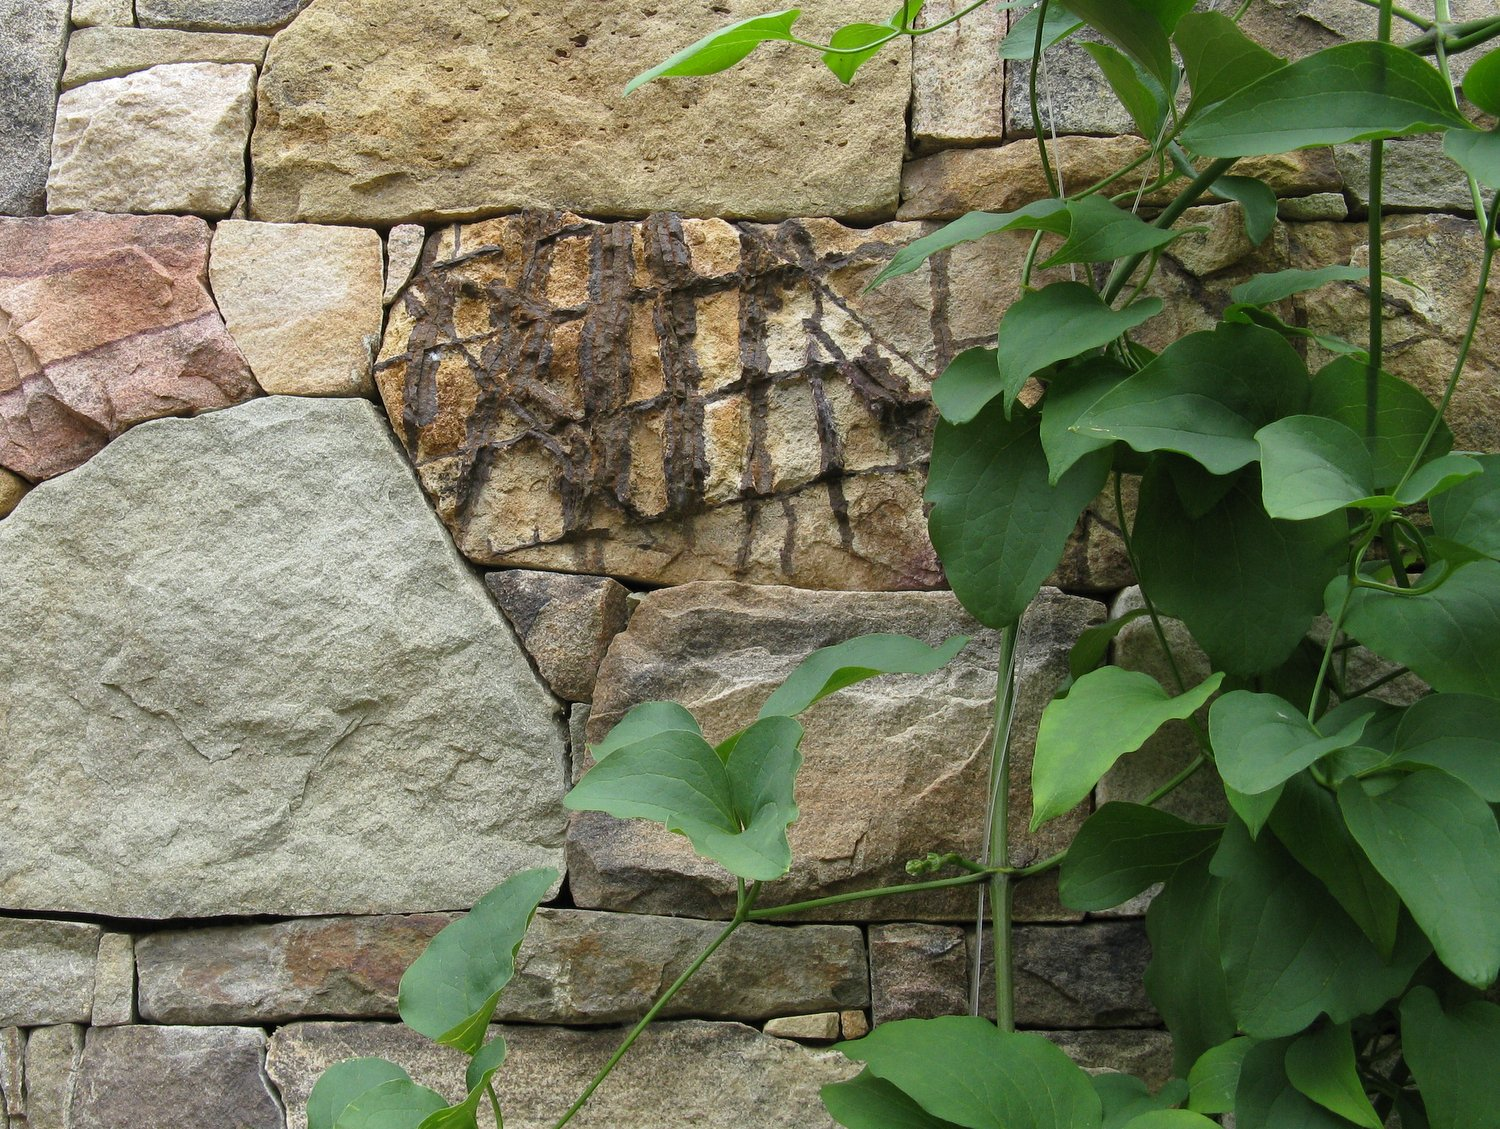 Natural stone imprinted by time